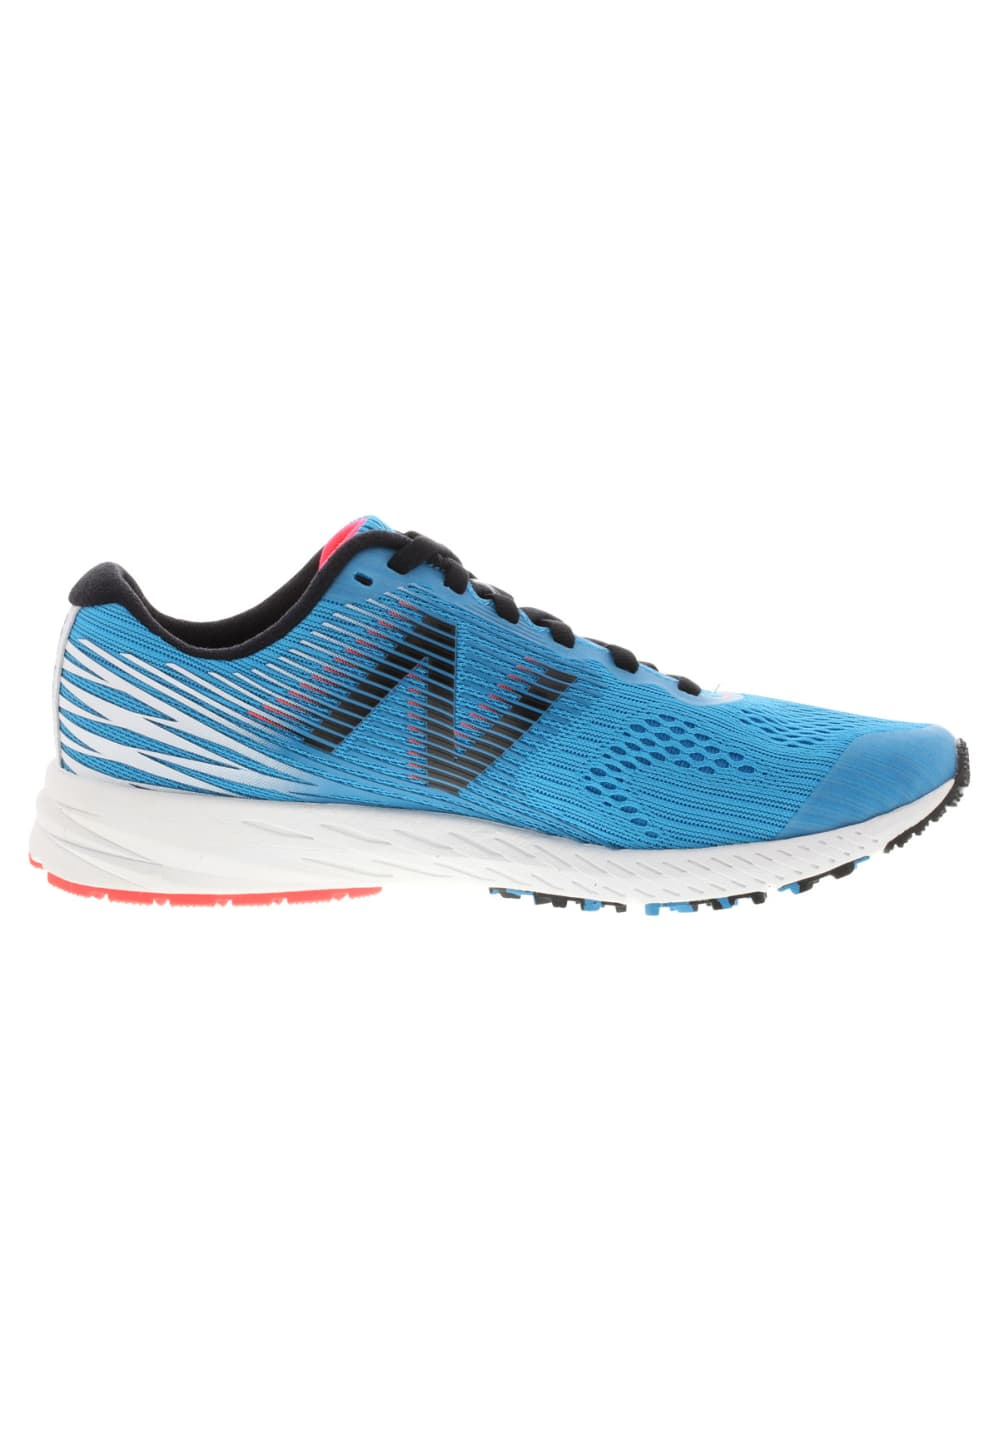 check out 1dbea 2866f New Balance 1400 V5 - Running shoes for Women - Blue